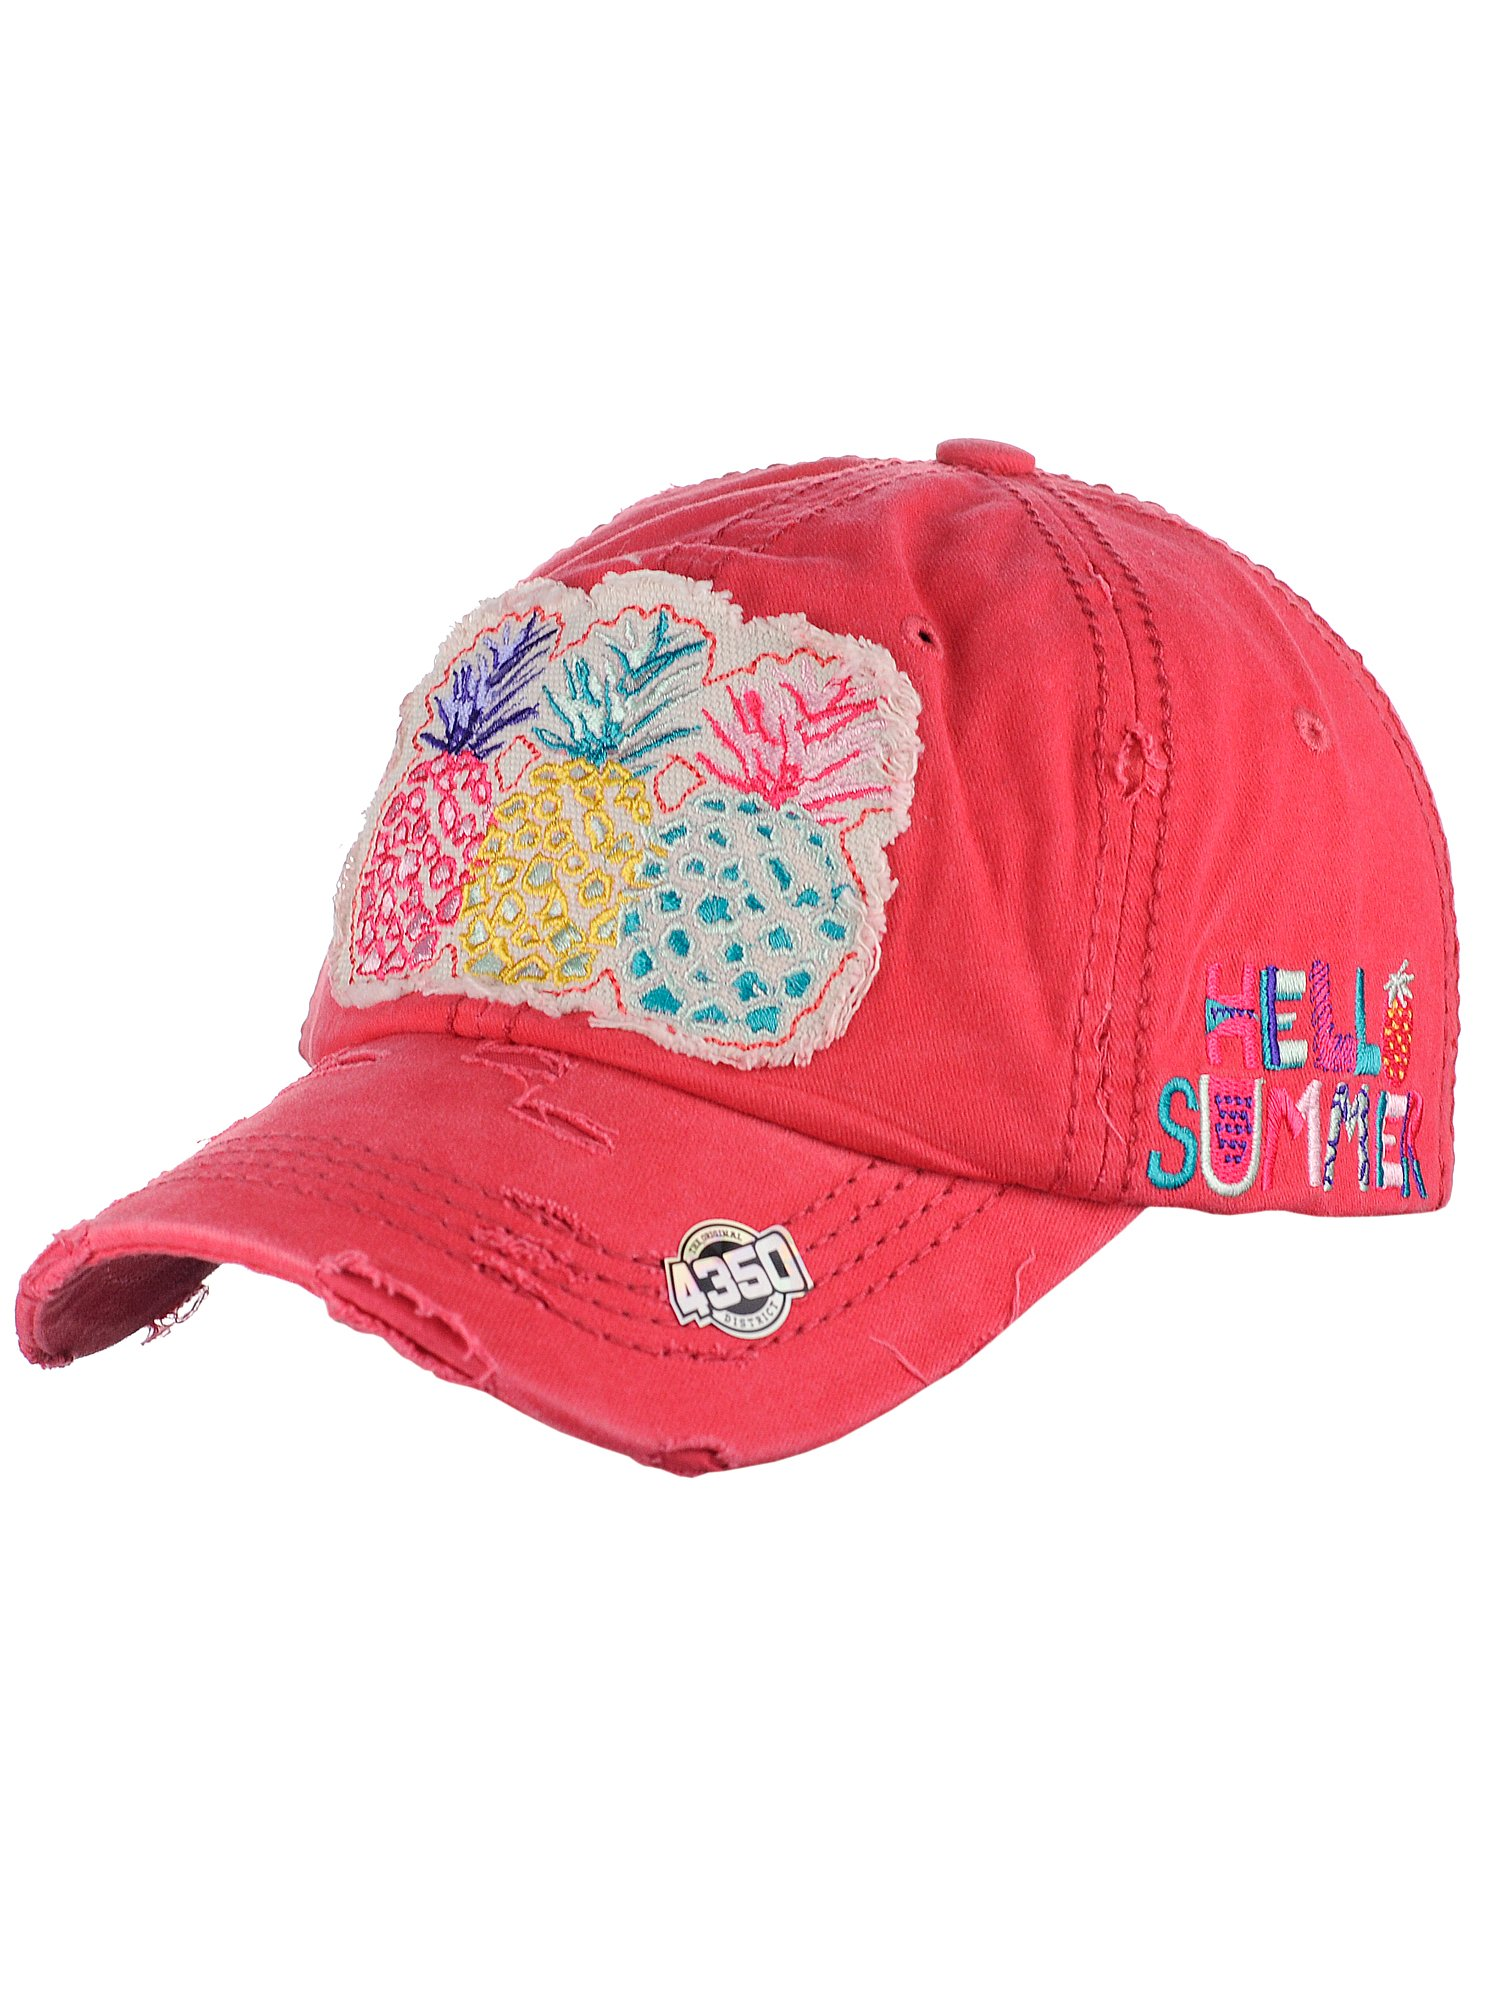 NYFASHION101 Women's Distressed Unconstructed Embroidered Baseball Cap Dad Hat, Pineapple, Coral